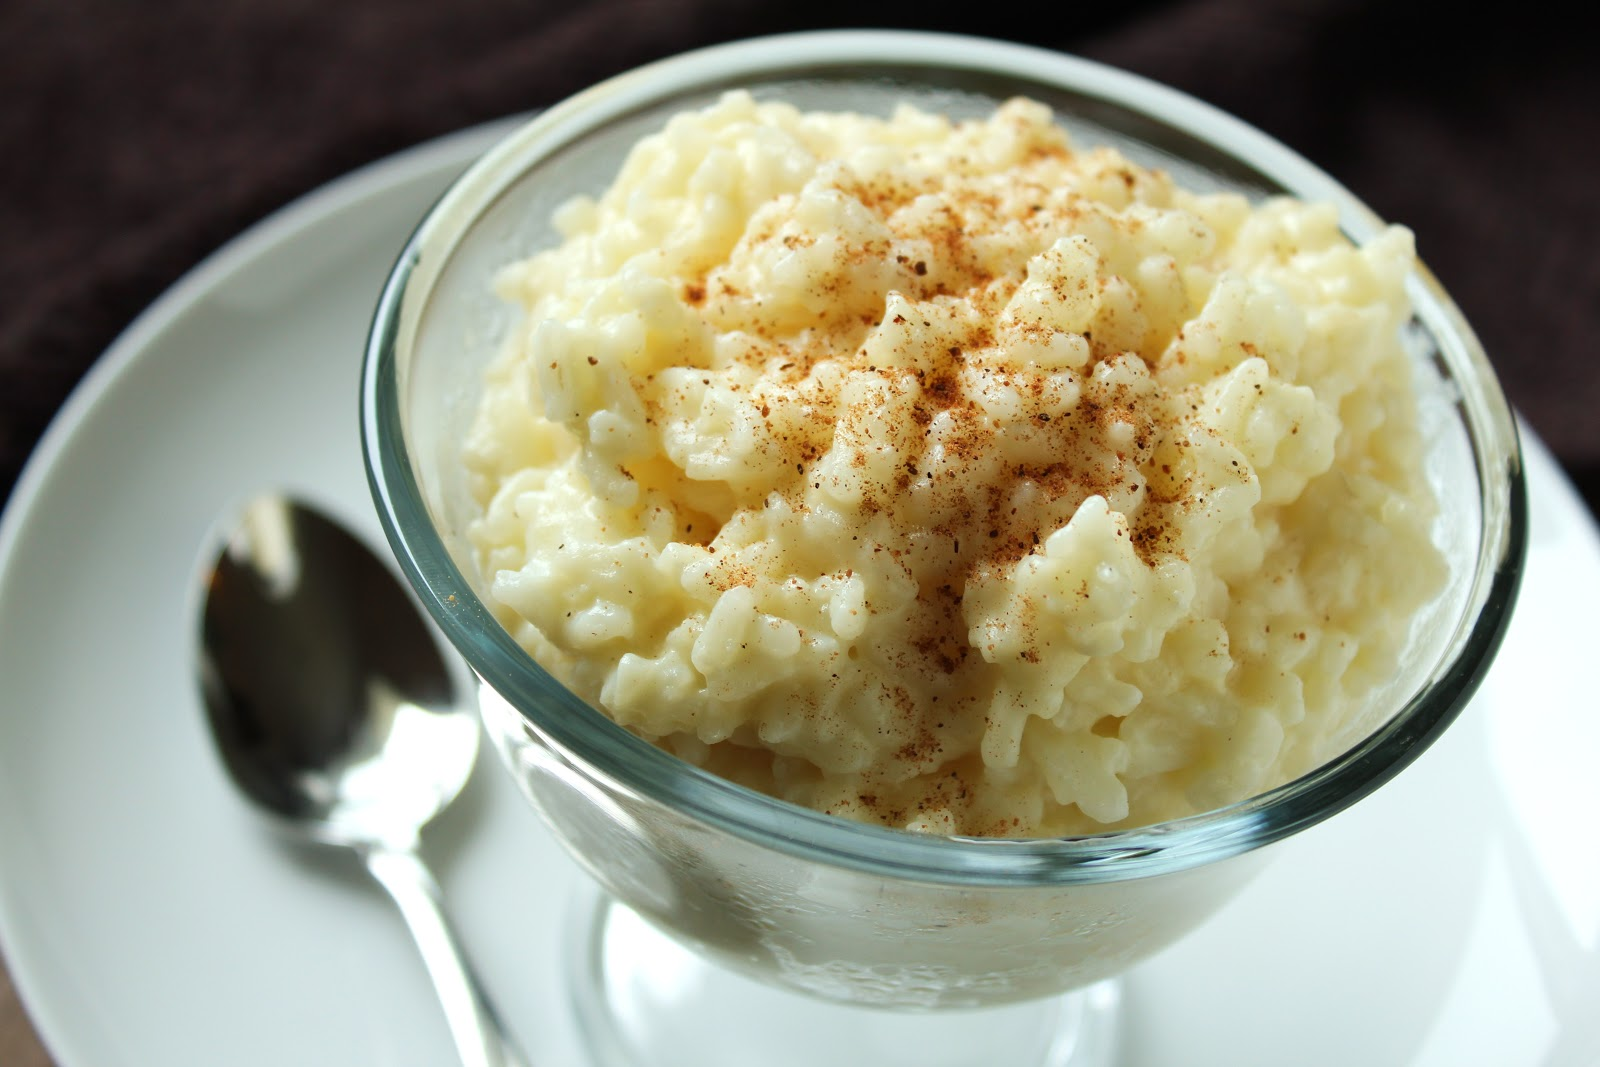 Creamy rice pudding with extra vanilla will comfort you and cheer you ...